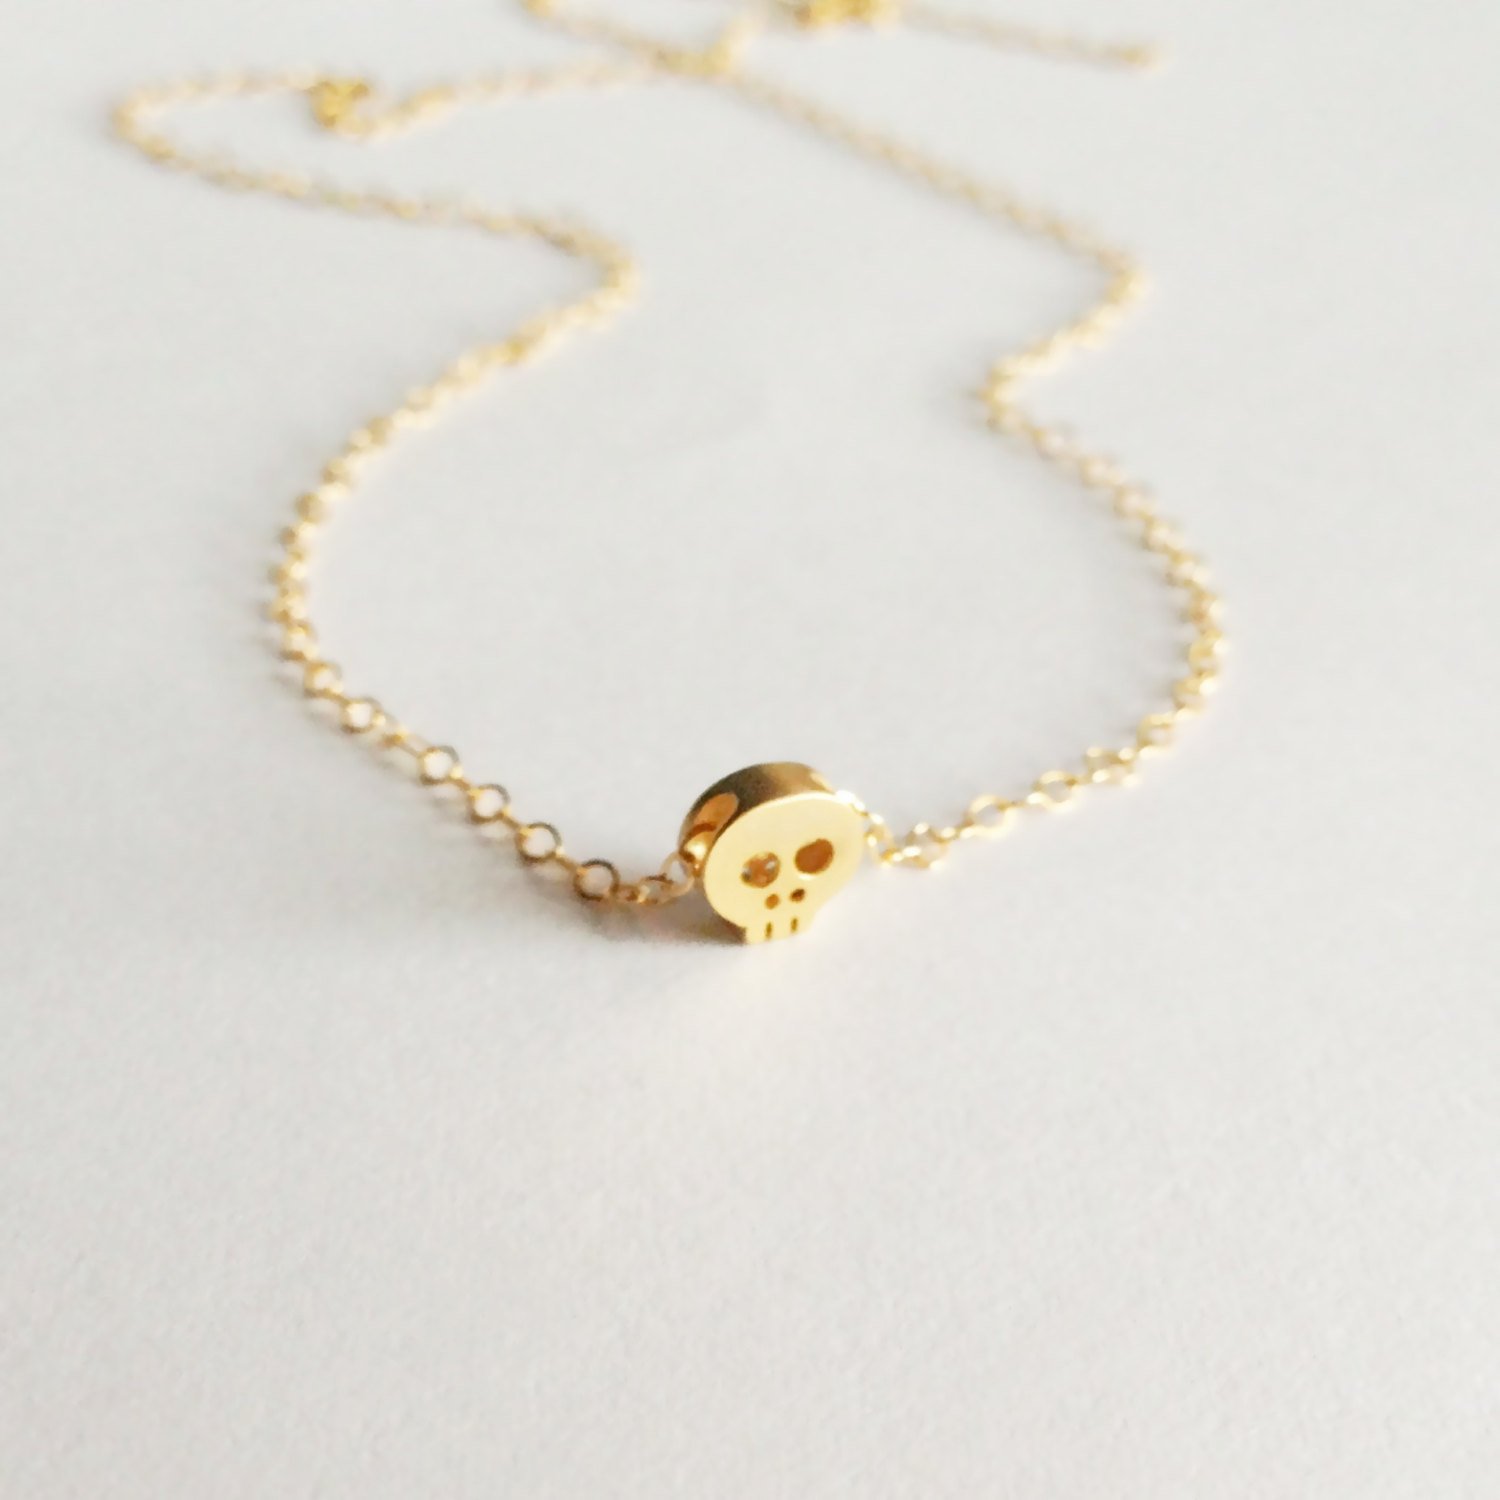 Tiny Gold Skull Necklace, Delicate Necklace